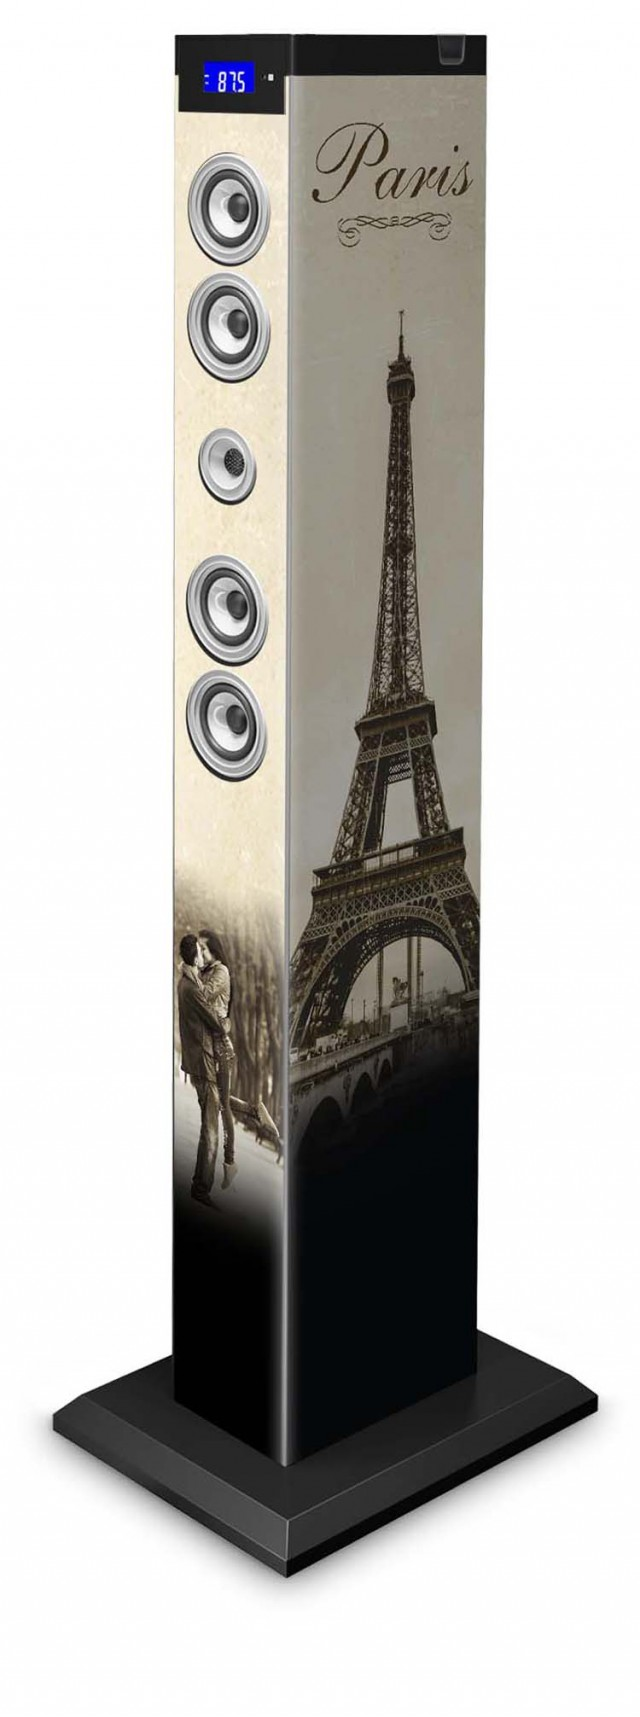 Multimedia Tower Paris - Packshot